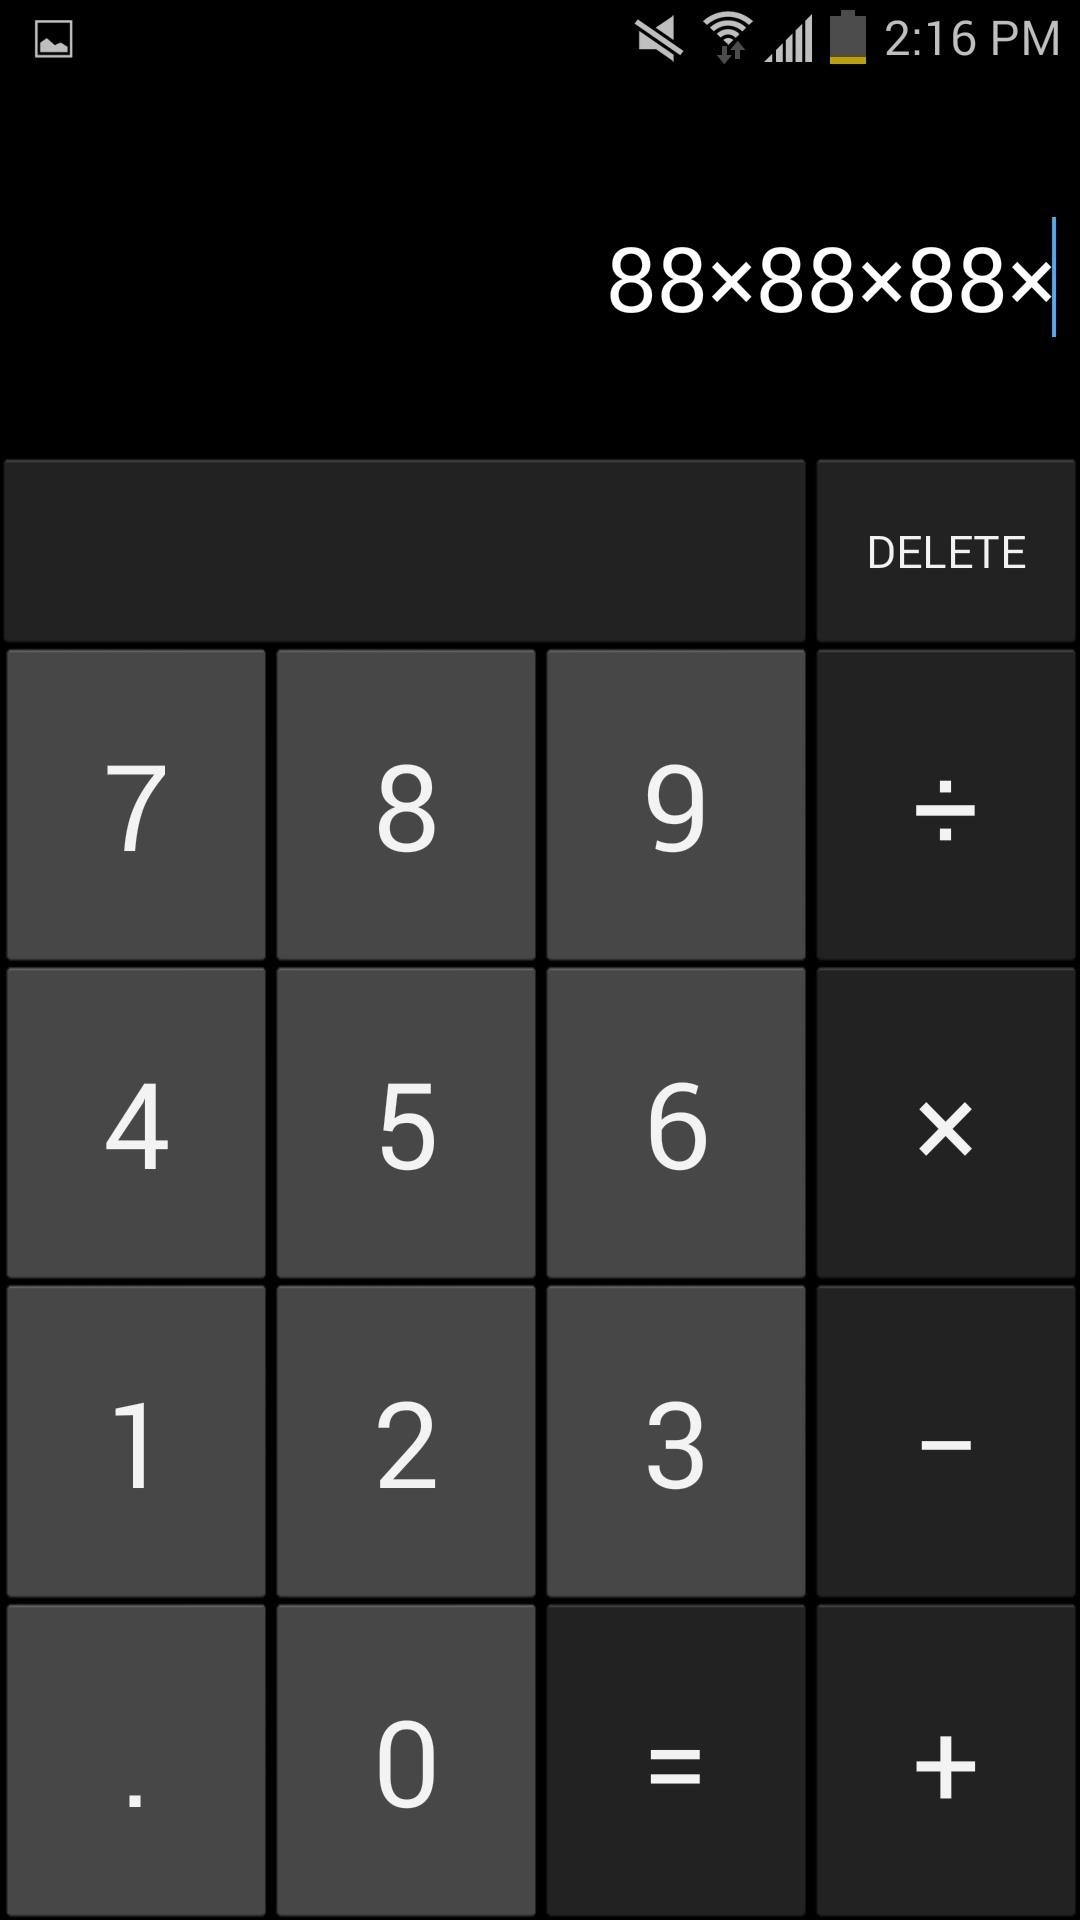 Secretly Call & Message Contacts Using an Innocent-Looking Android Calculator